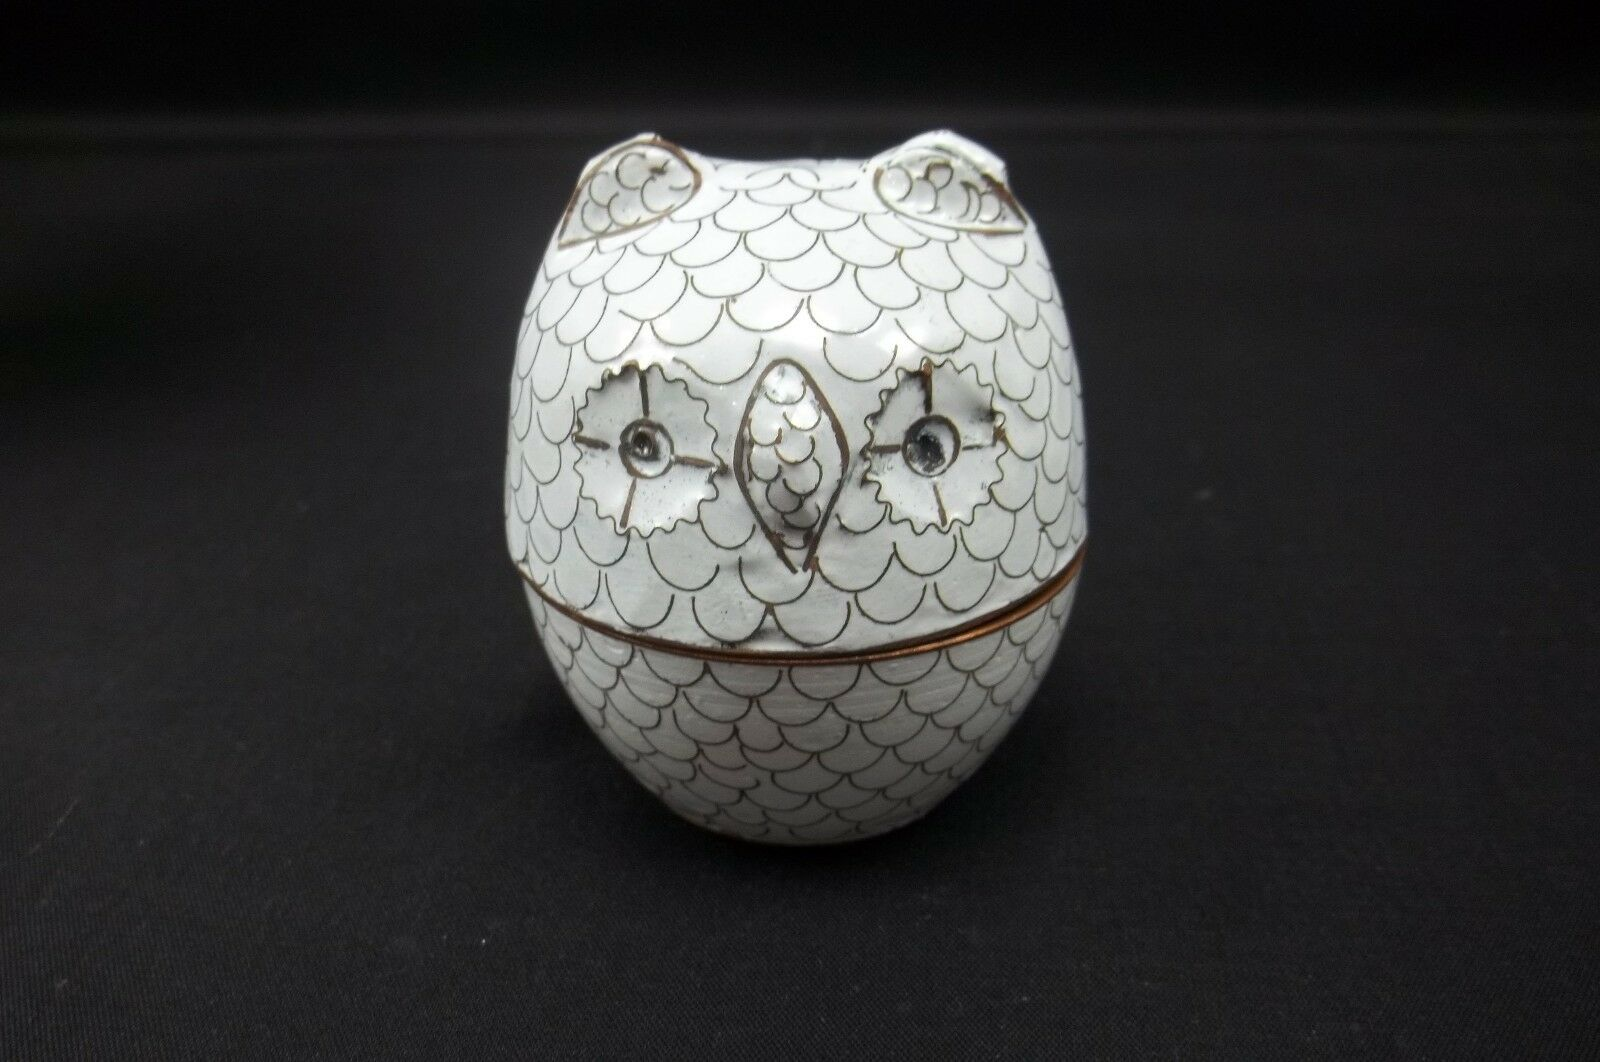 Decorative Boxes Pottery Barn : Pottery barn owl decorative cloisonne ring jewelry box